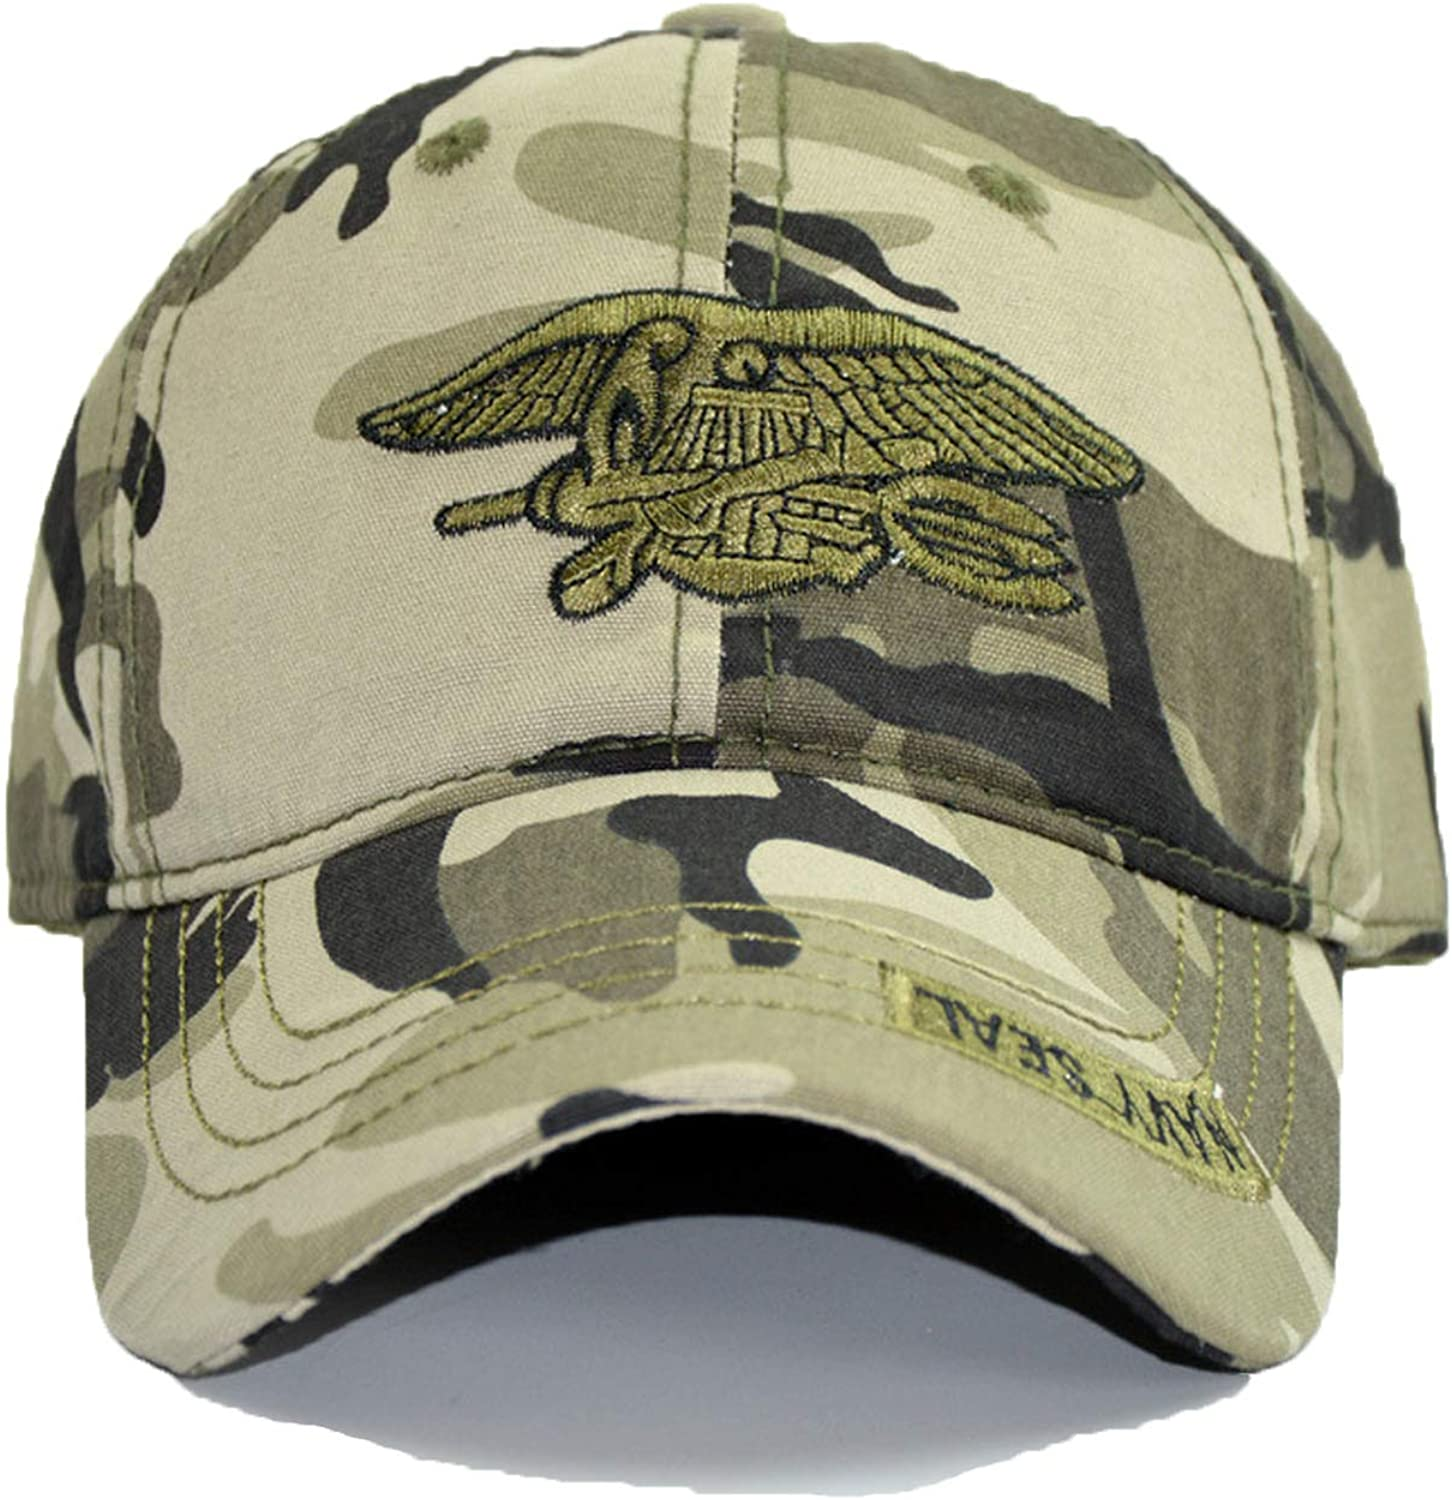 CHENTAI Male Spring Youth Camouflage Summer Outdoor Baseball Hat Embroidery Tactical Cap